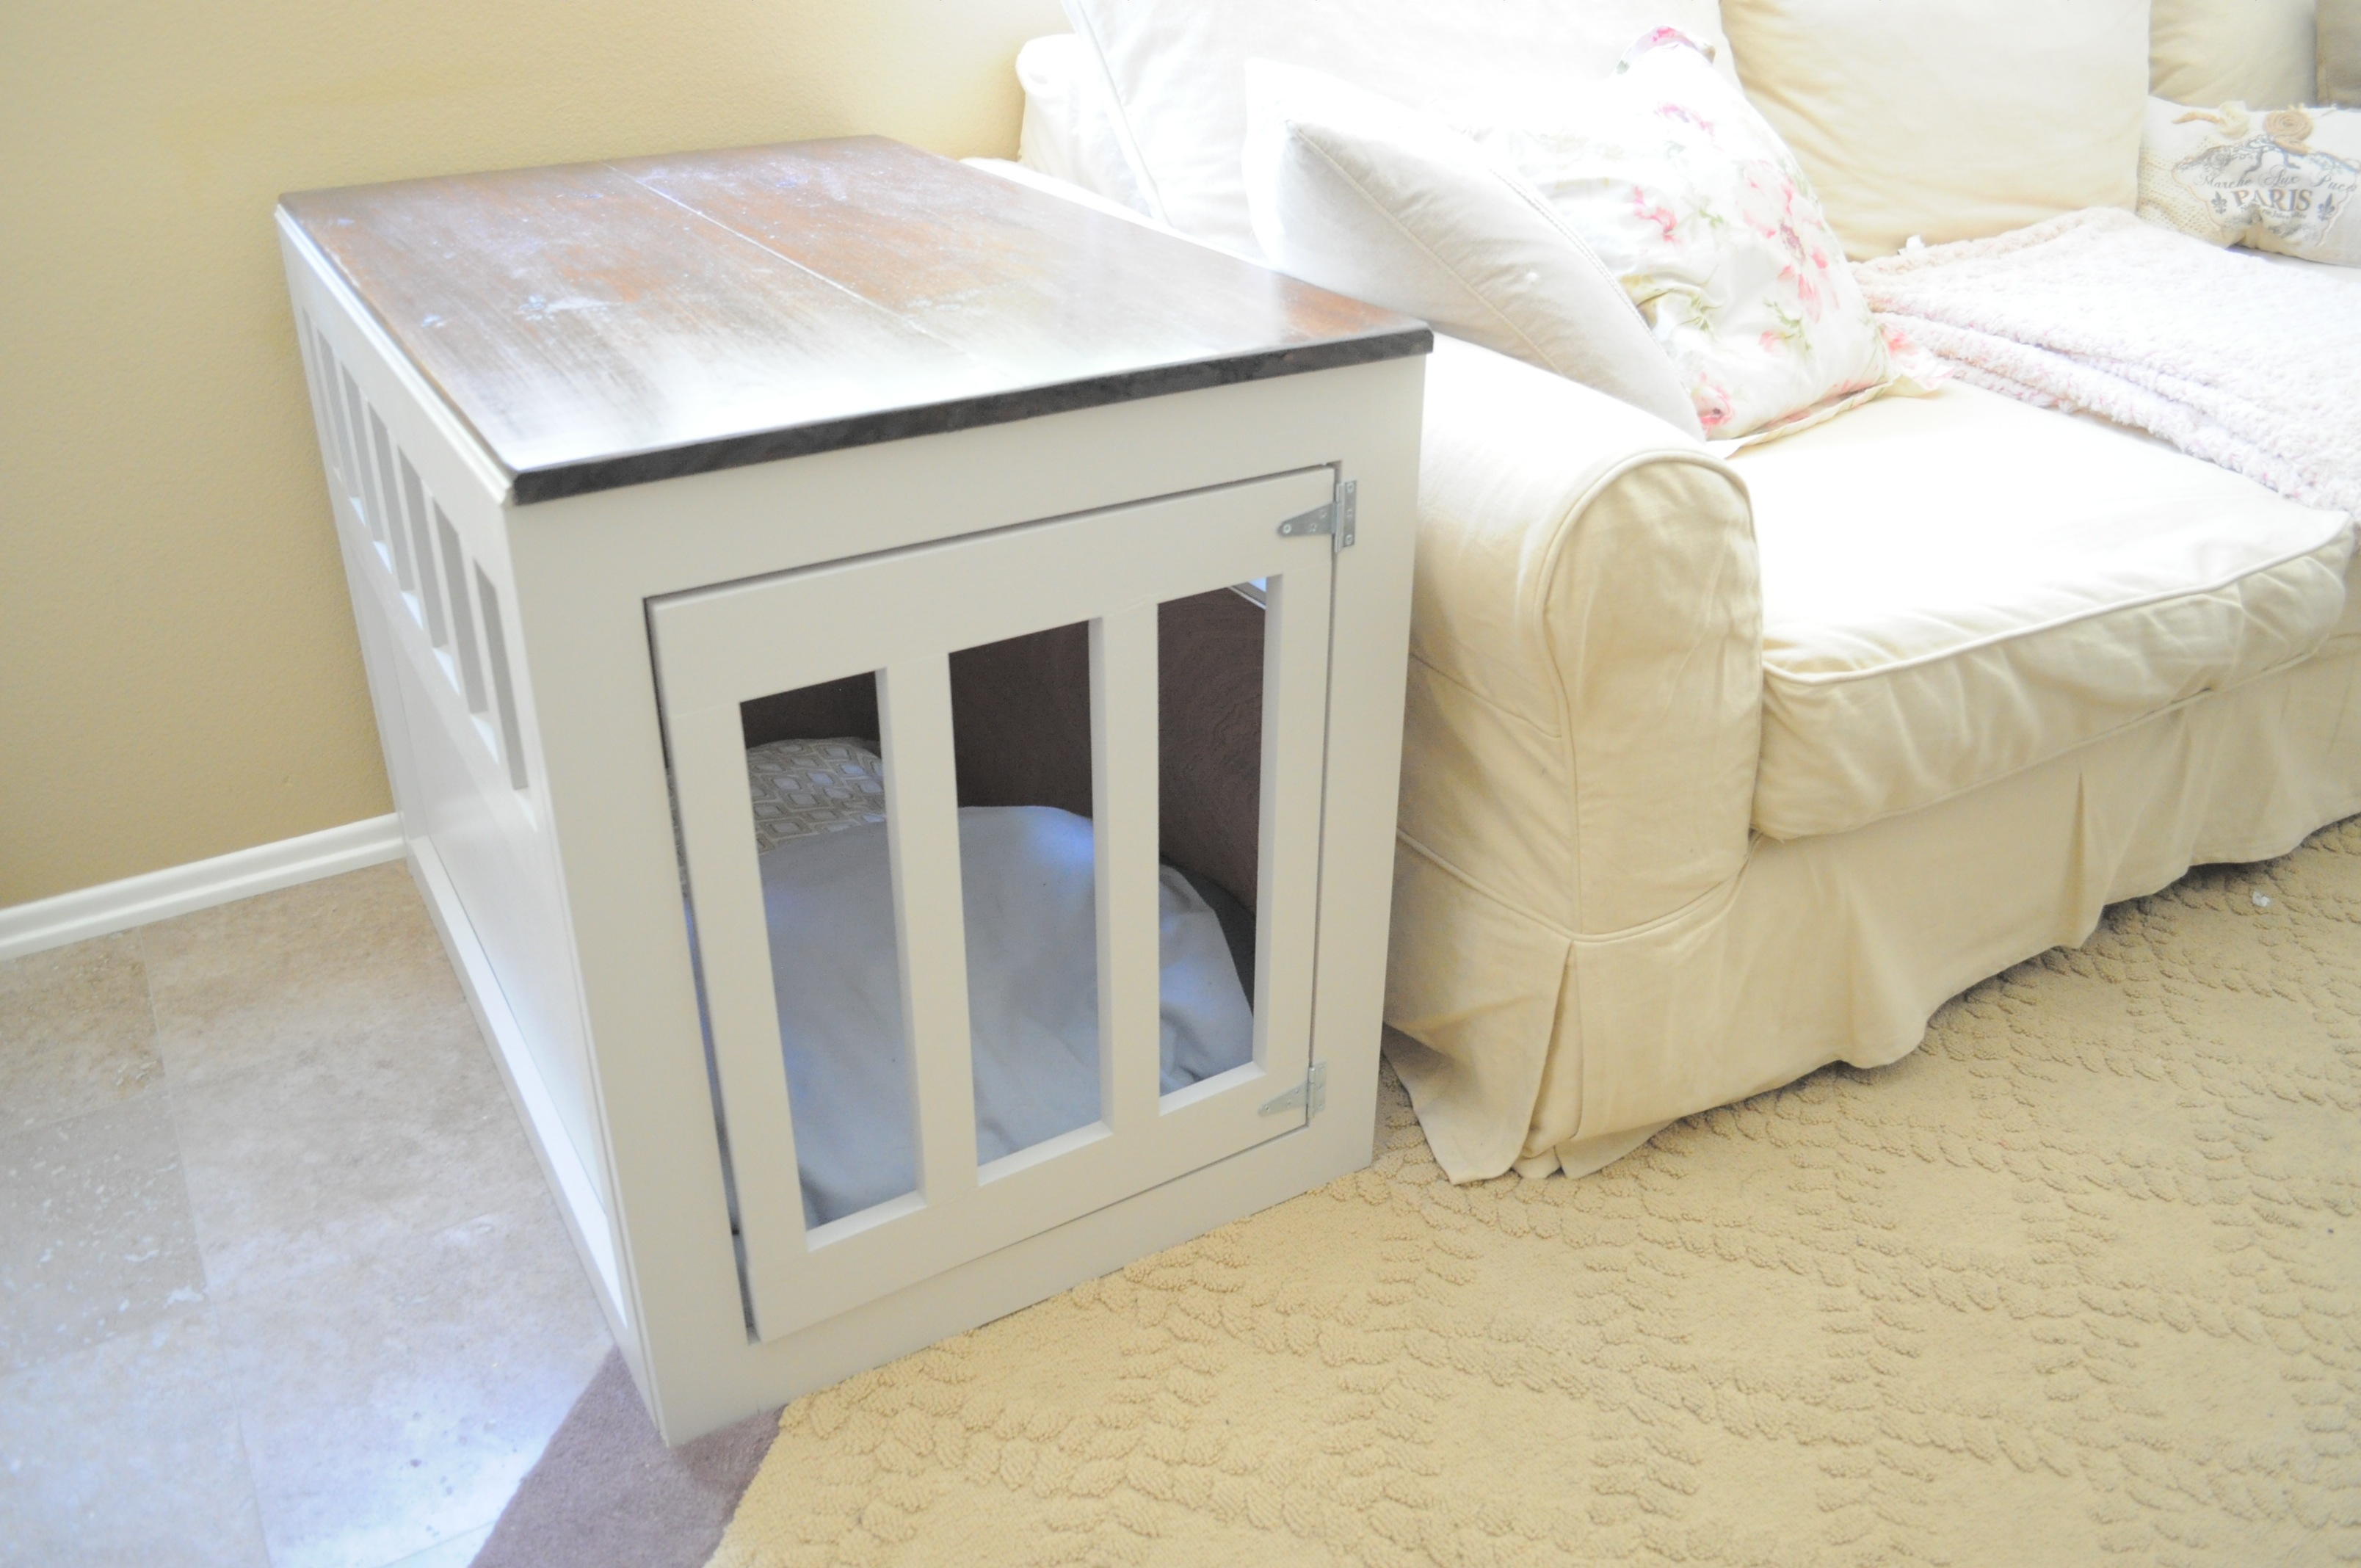 build your own dog crate end table quick woodworking diy dinner ethan allen heirloom collection jeco wicker farmhouse coffee with drawers ashley furniture marble albany reviews